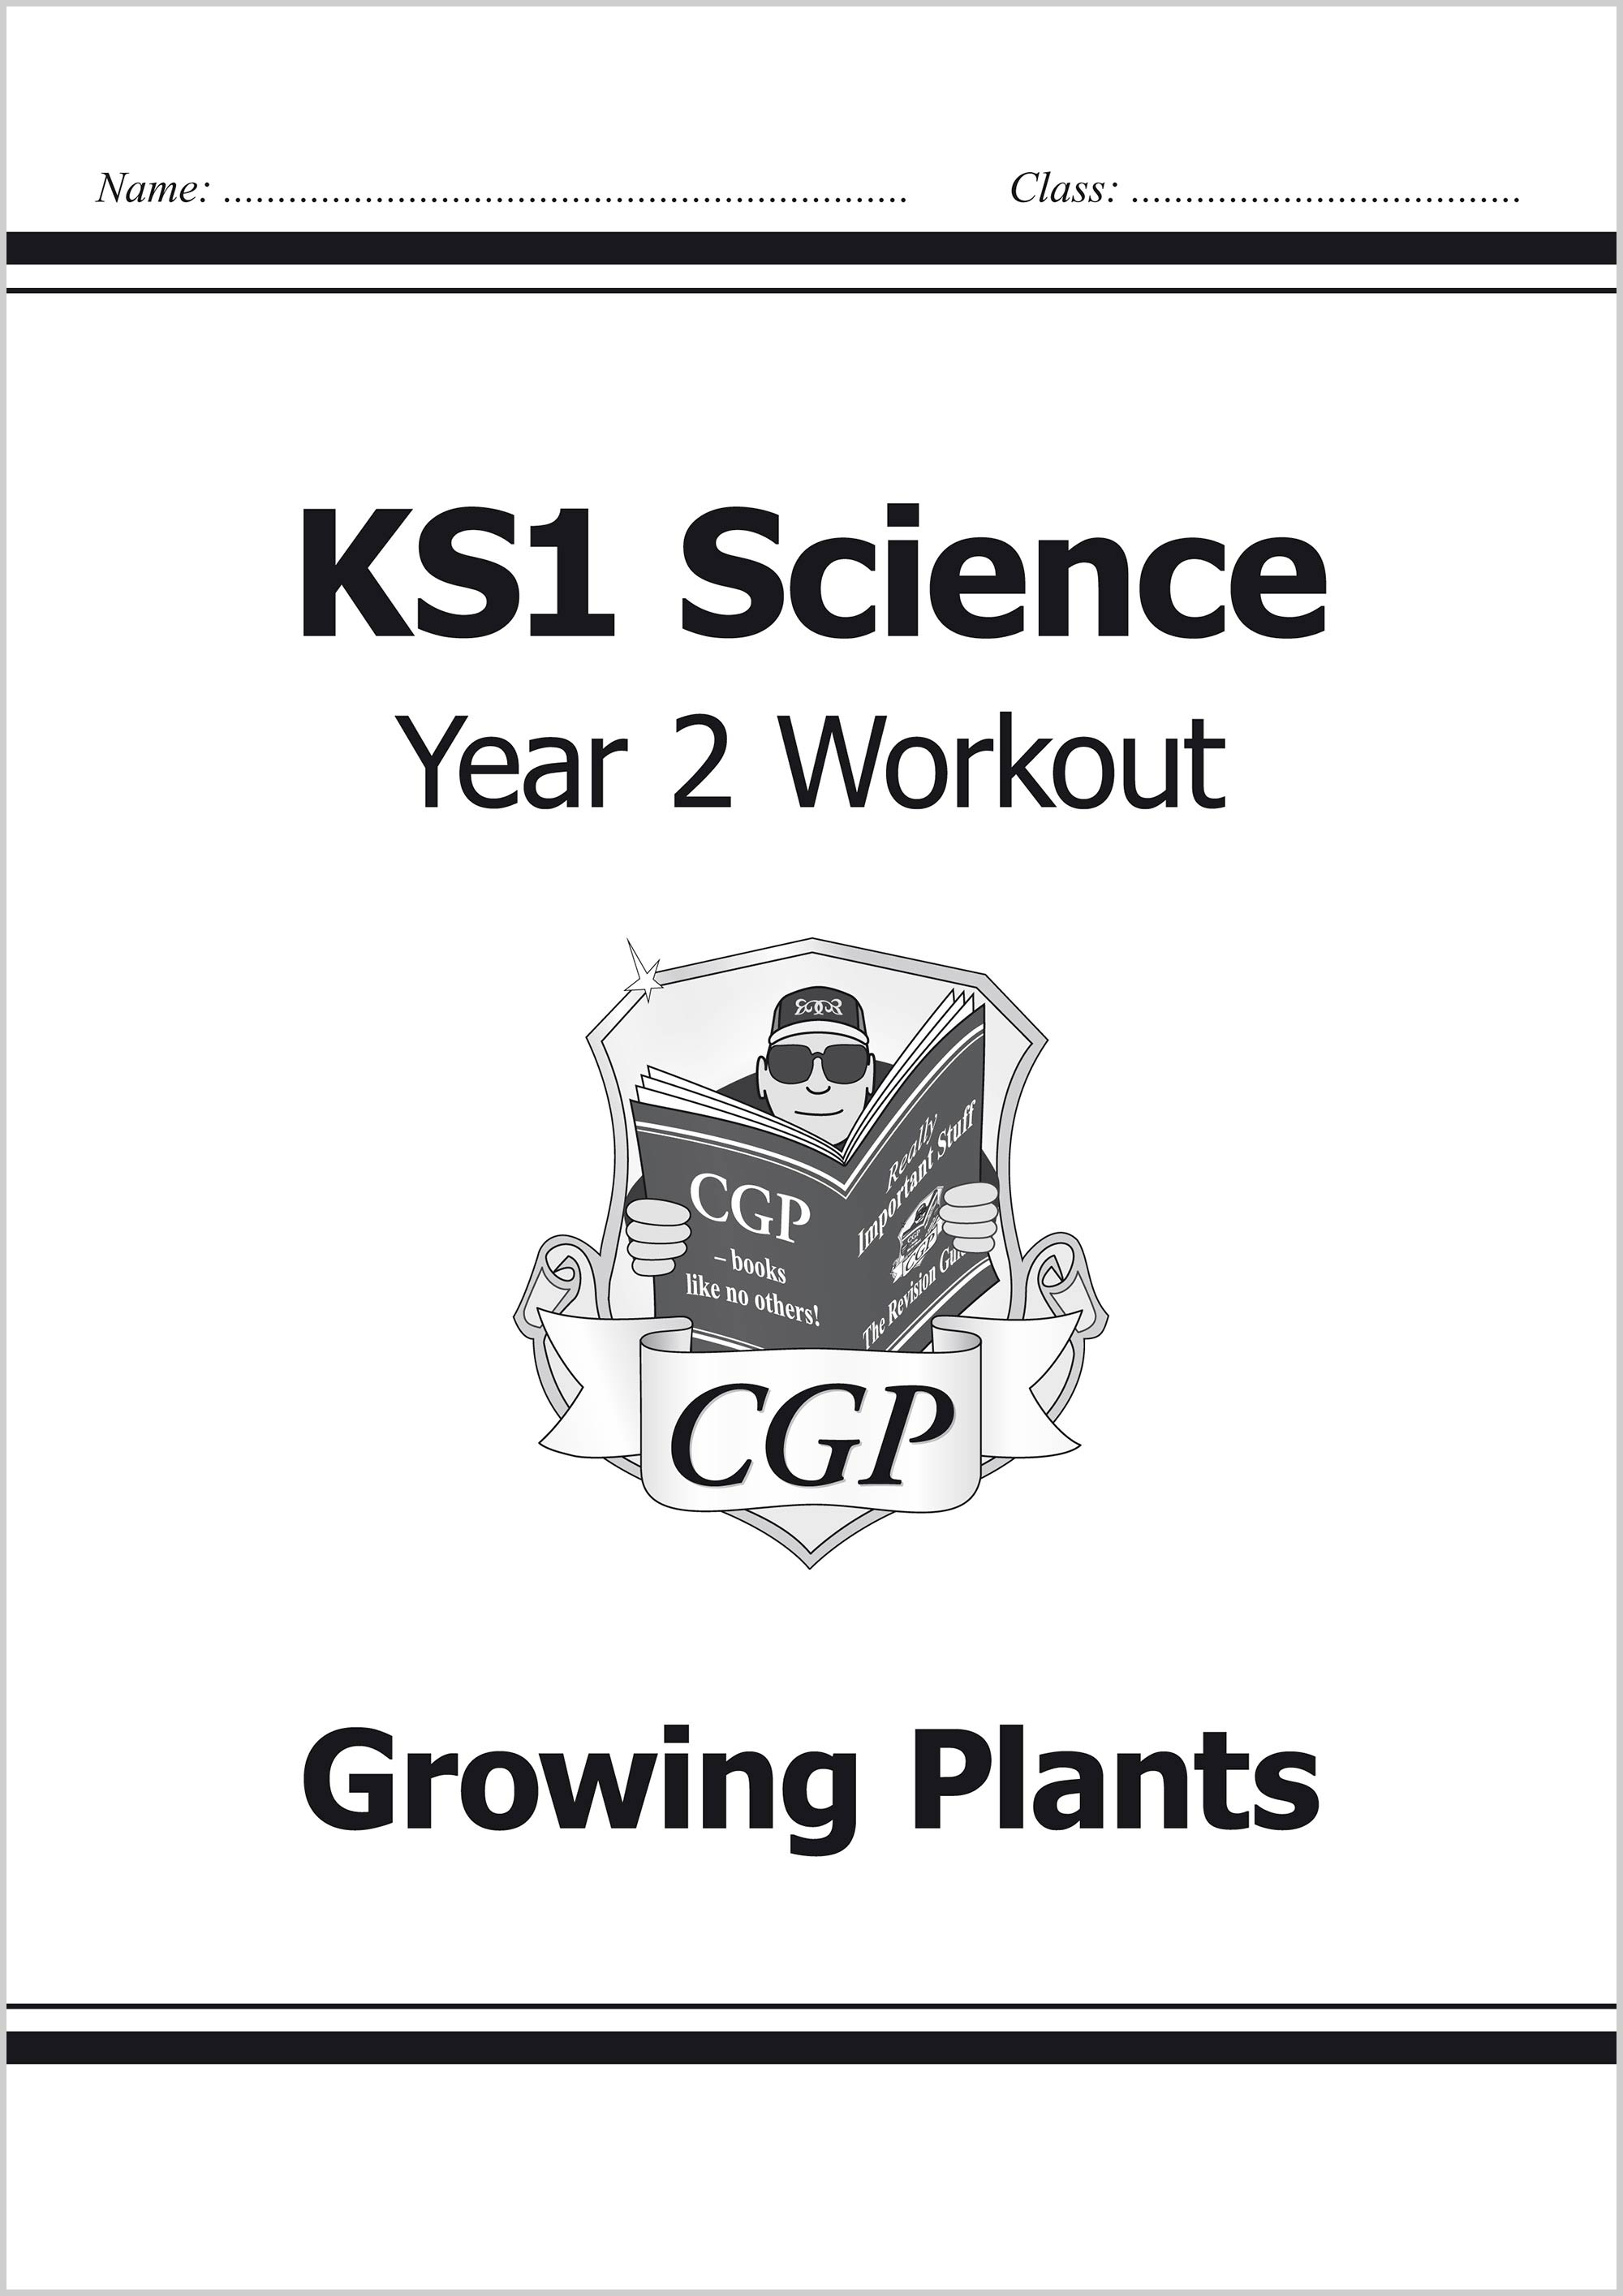 S2B11 - KS1 Science Year Two Workout: Growing Plants